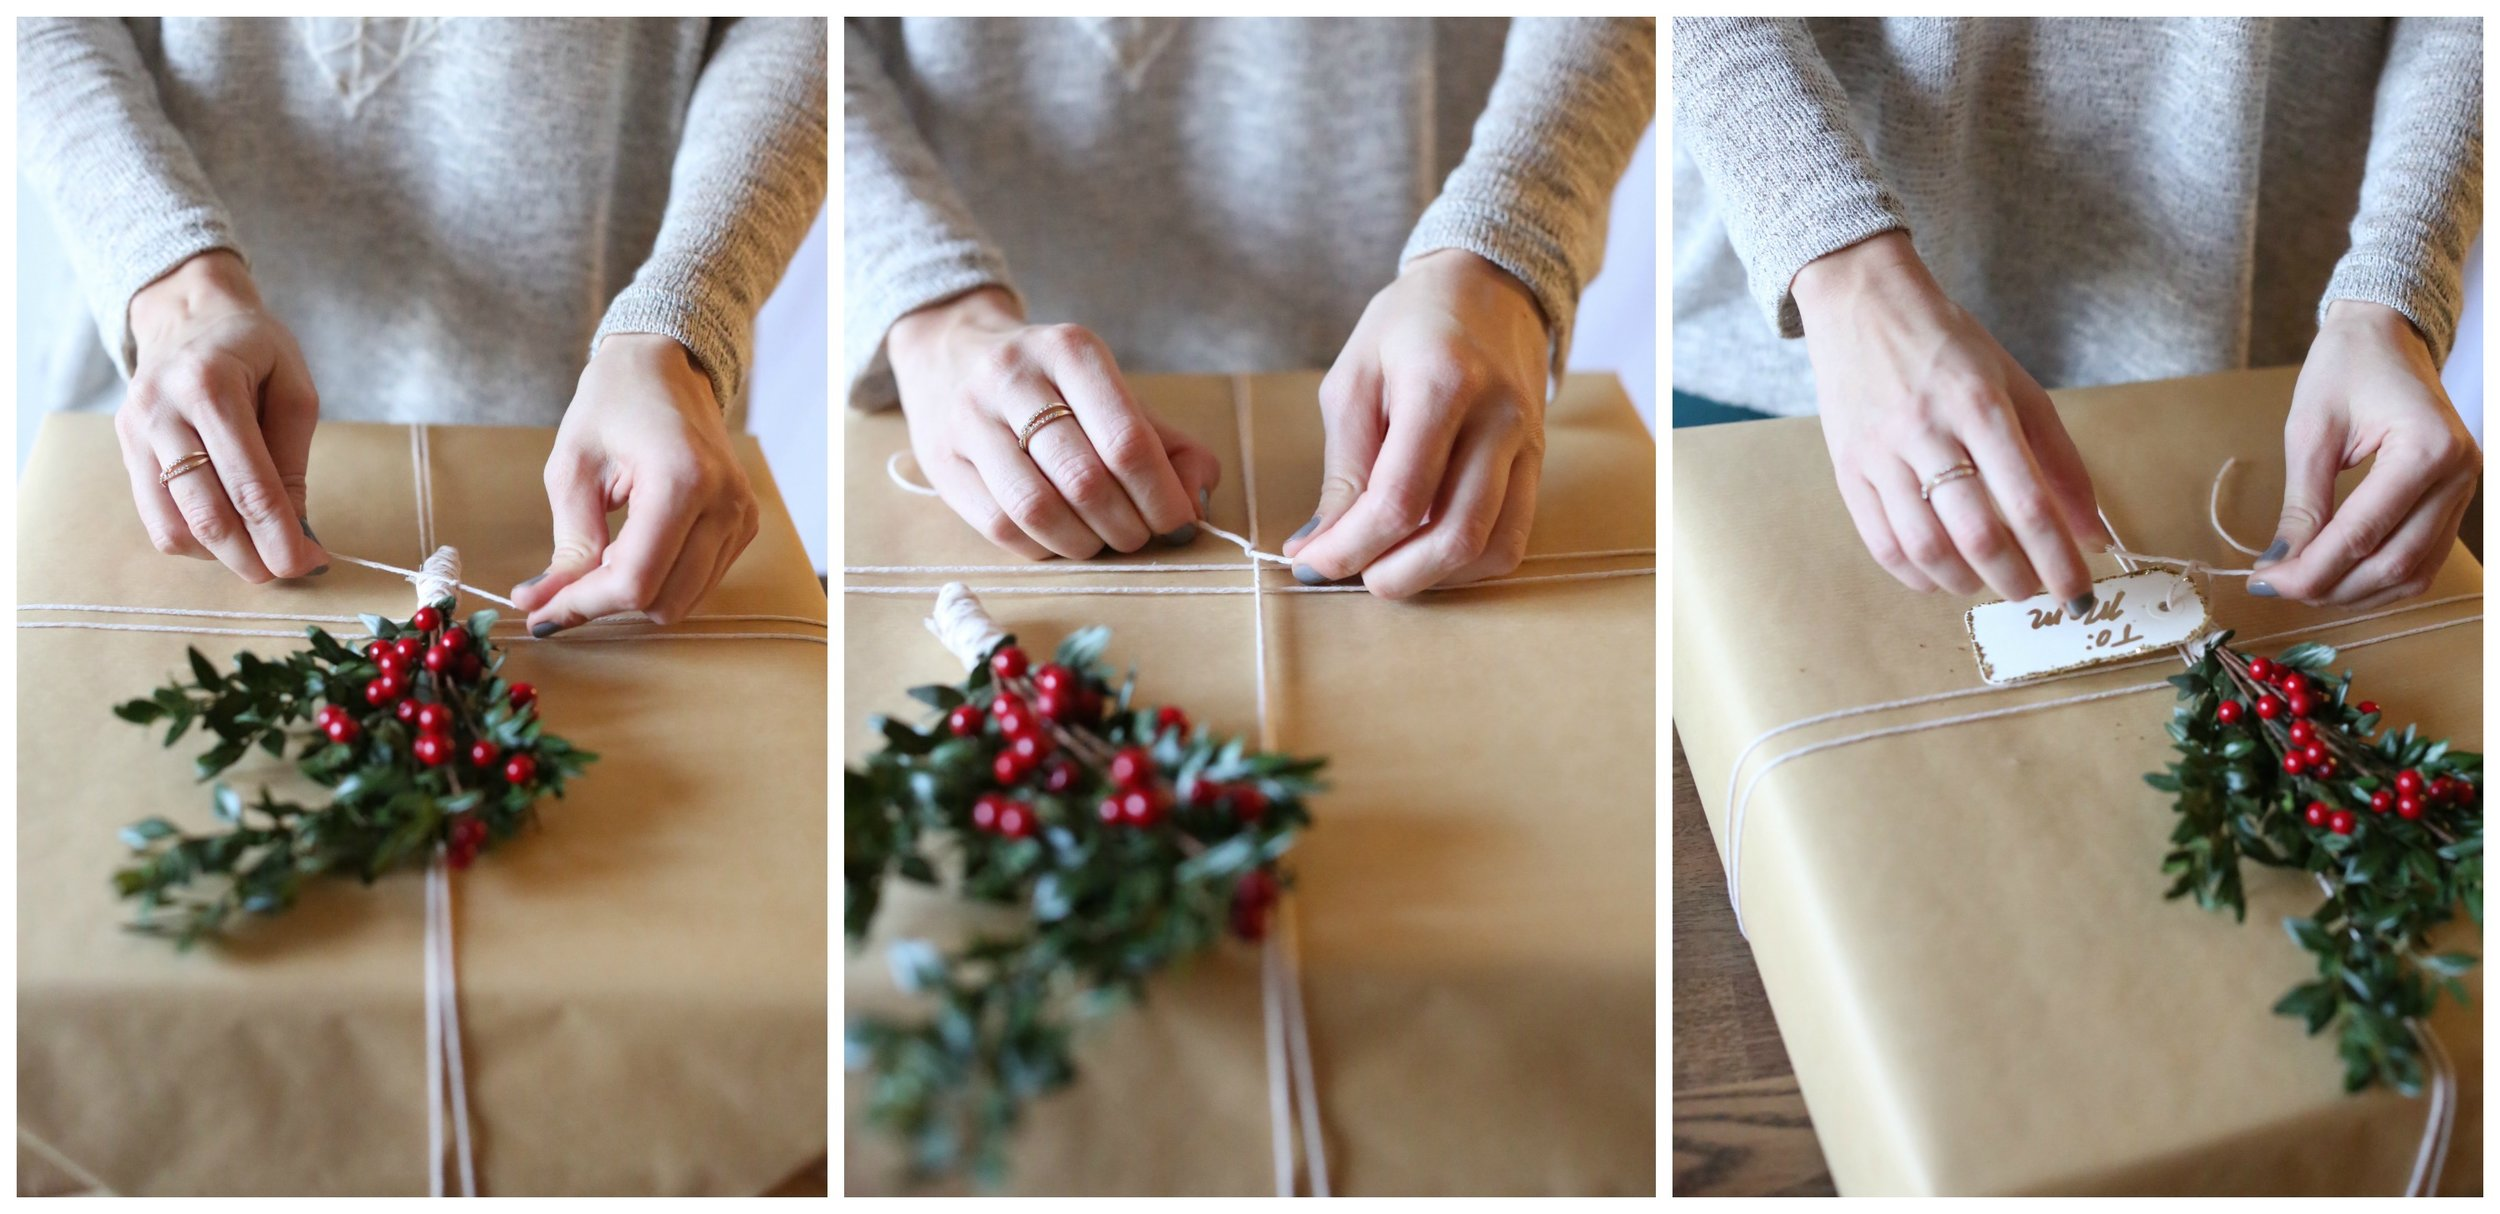 Christmas Wrapping Tutorial | Katelyn Now